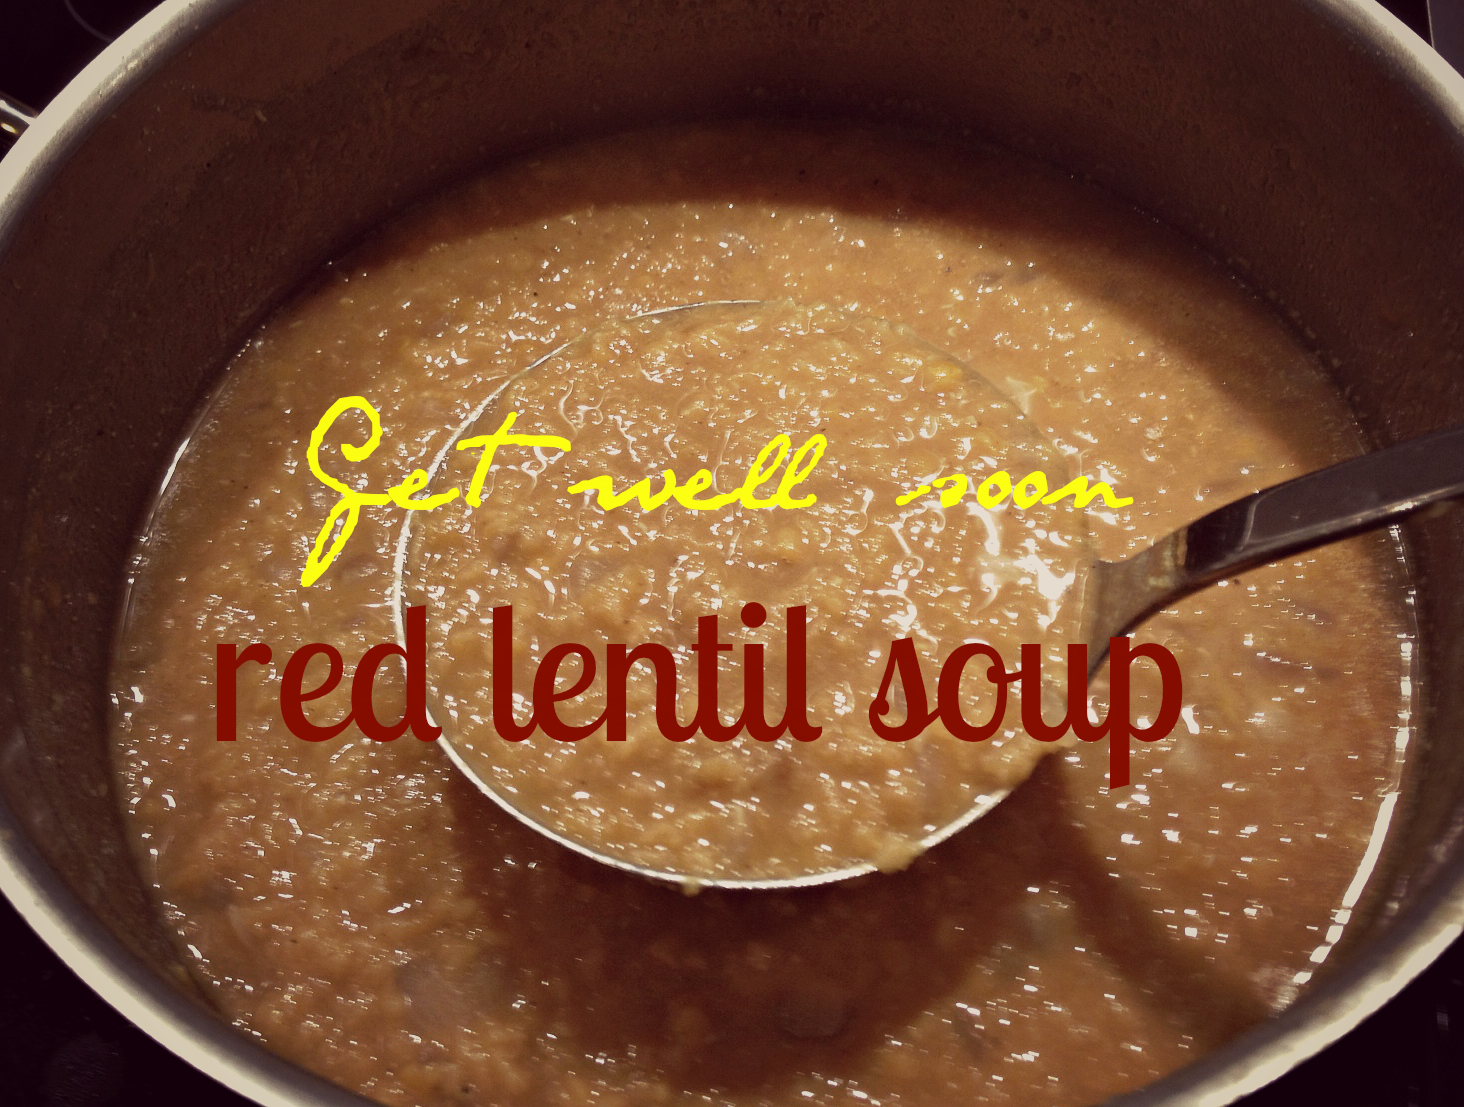 Get Well Soon Red Lentil Soup